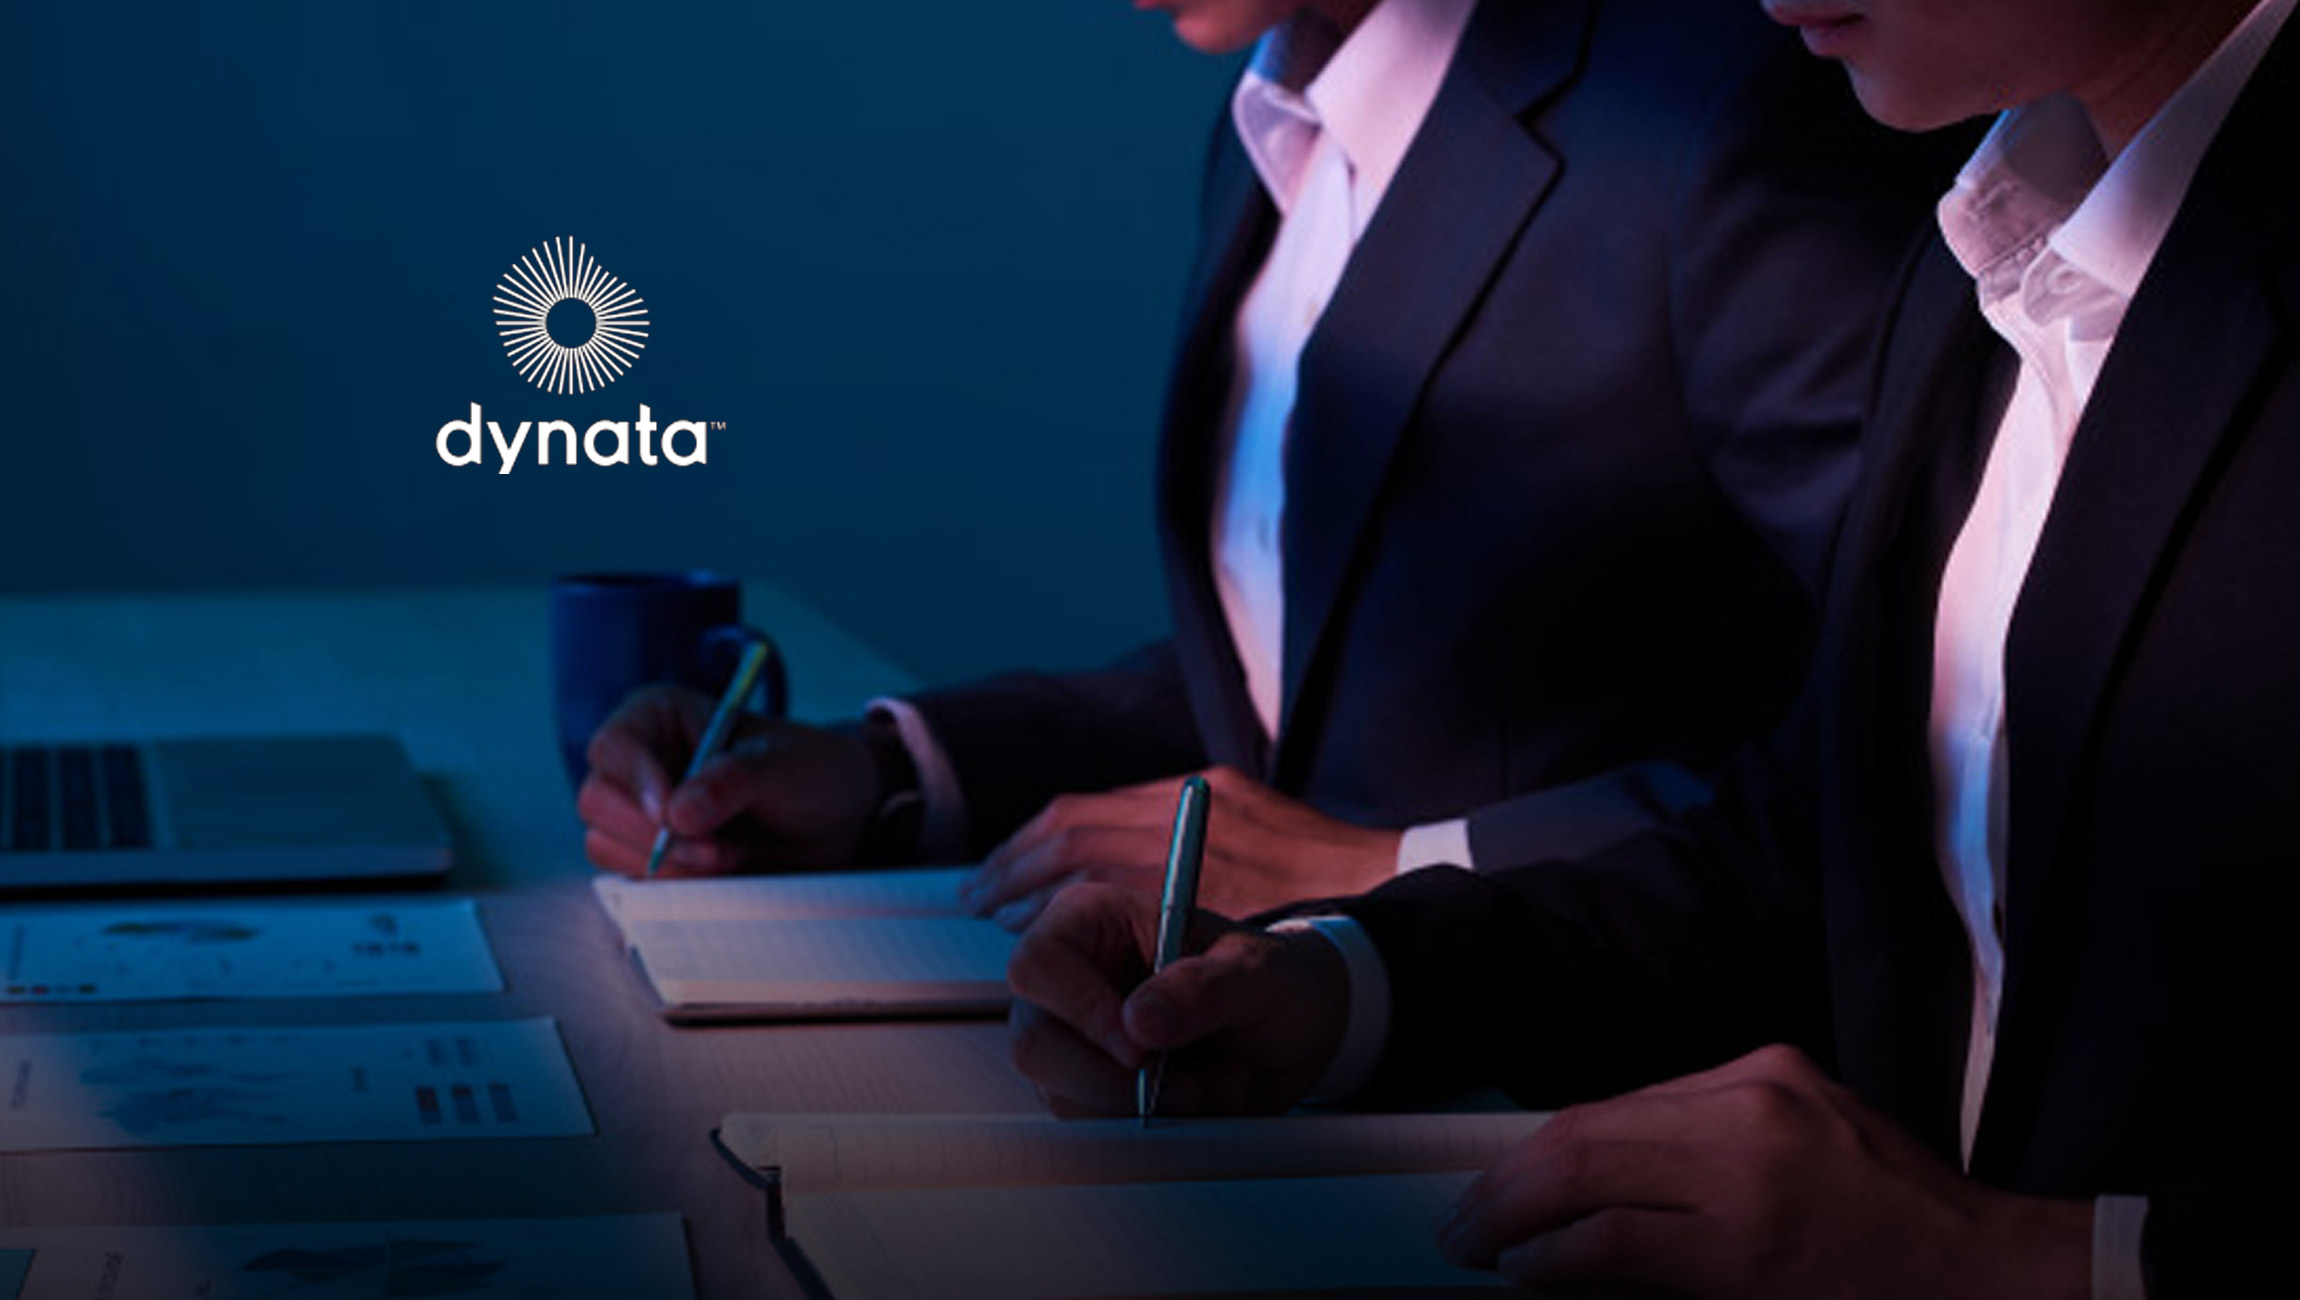 Dynata Acquires CrowdLab, Expanding Research & Insights Opportunities for Brands to Connect with Consumers